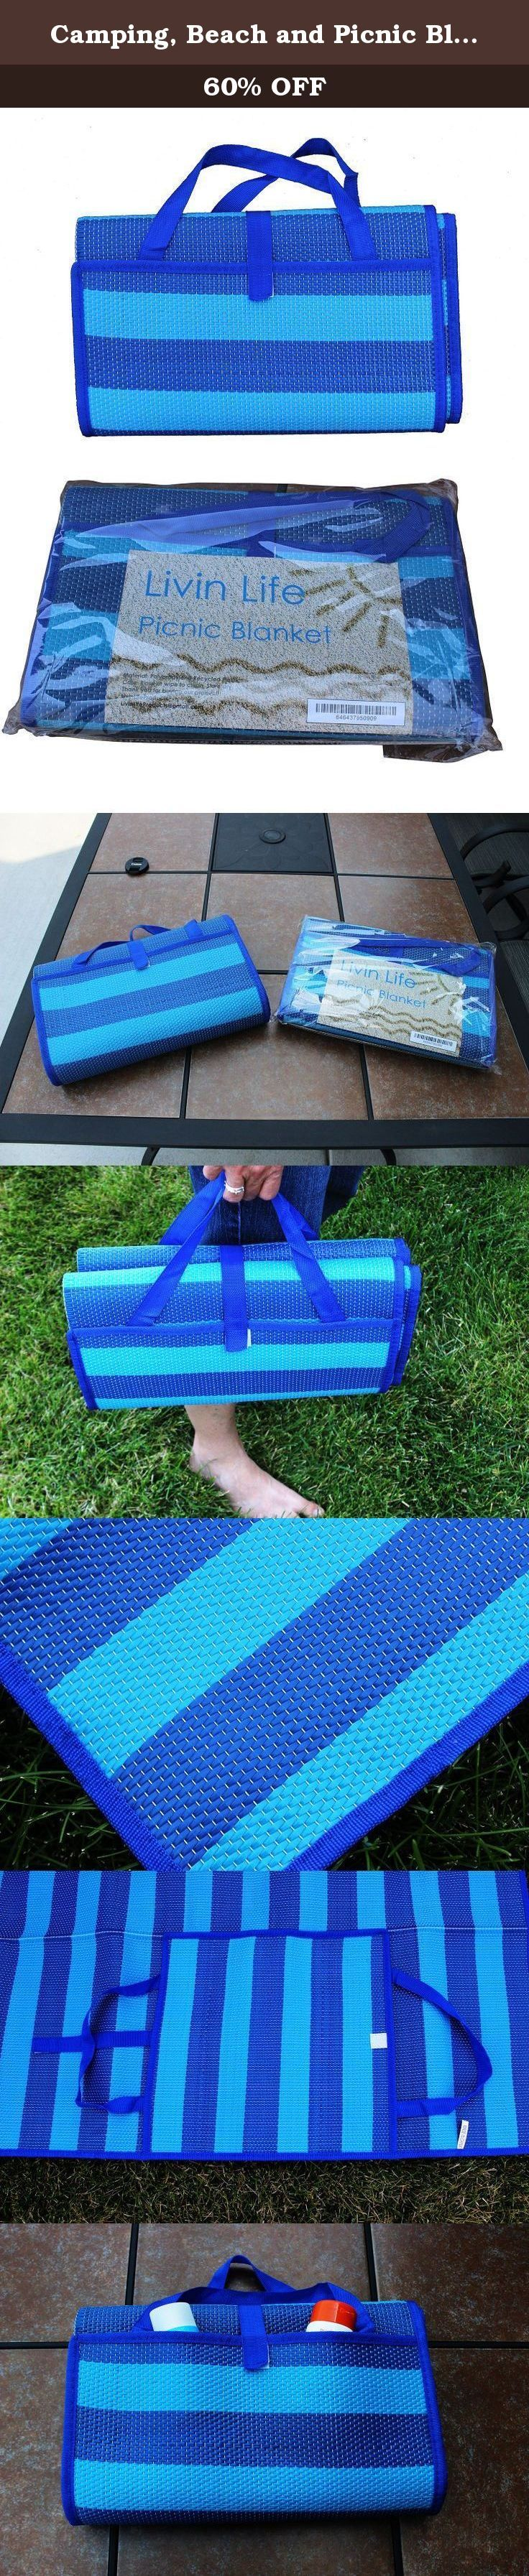 """Camping, Beach and Picnic Blanket By Livin Life Products, Water & Sand Resistant, Folds Compactly, Large Size 60""""x71"""", Durable, Lightweight and Handy Mat to Keep in Each Car, Get One for All Your Outdoor Adventures!. Large Picnic Blanket for Camping and Beach Handy Mat to Keep in the Car - Are there times you need a blanket and don't have one? - Compact and on hand at all times - Great picnic blanket, beach mat, outdoor blanket and camping blanket - Water resistant, clean surface for..."""